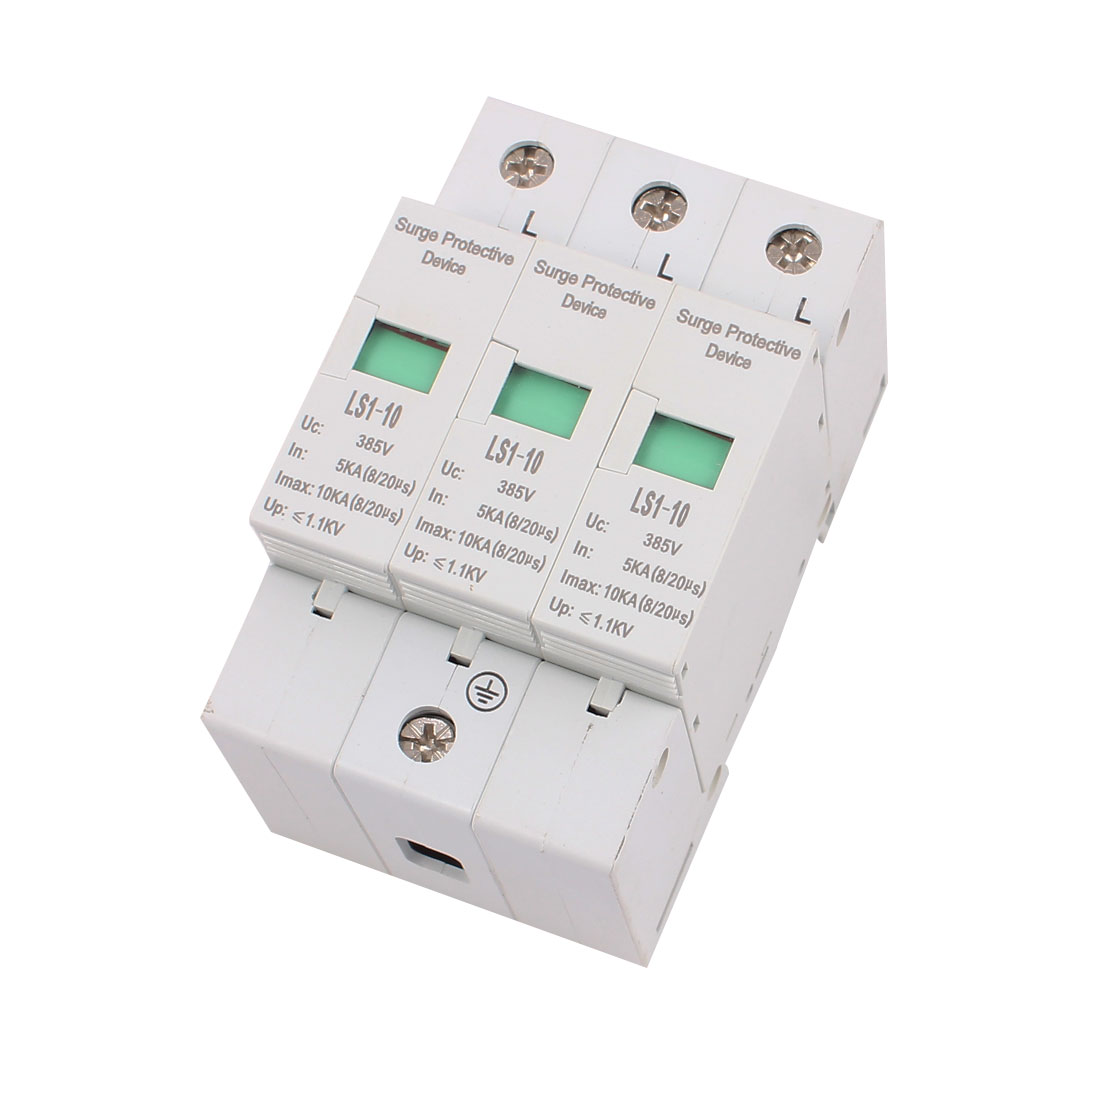 DC 385V 10KA Max Current 5KA In 3 Poles Arrester Surge Protector Device